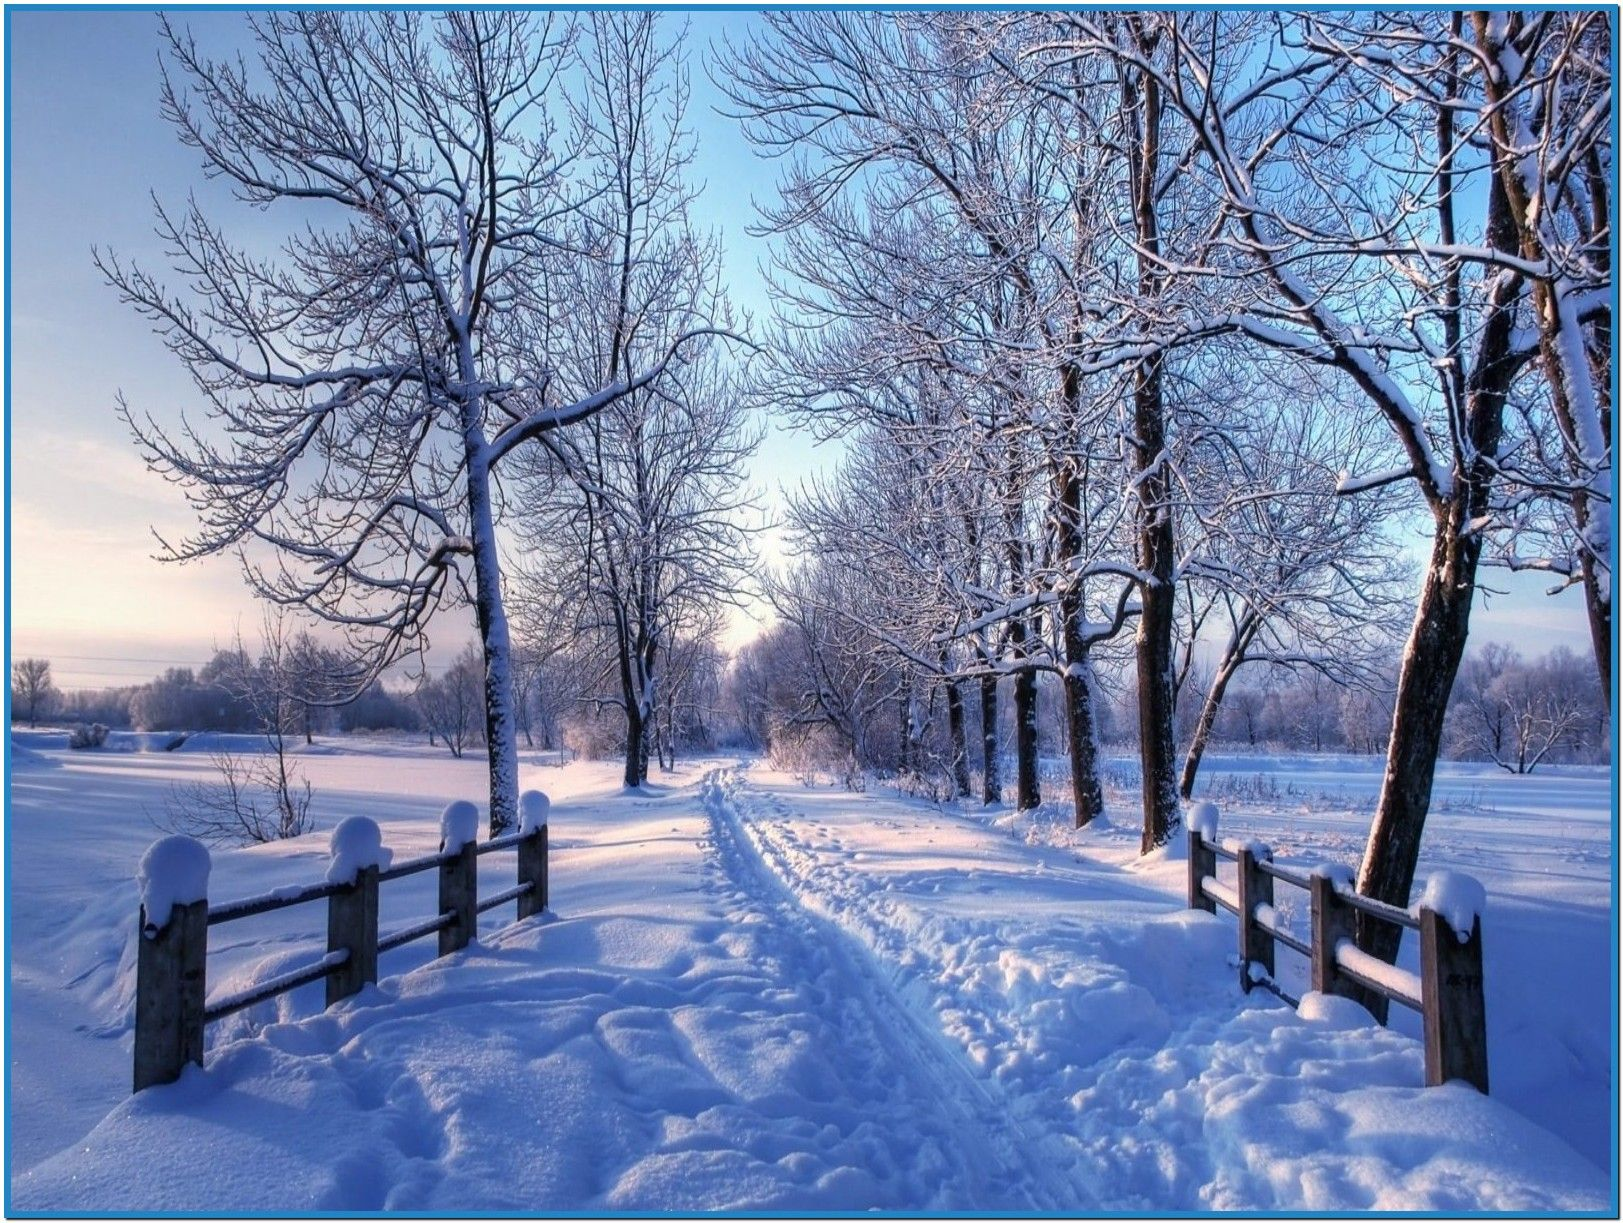 Snowy Winter Screensaver Mac Download Free Winter Landscape Winter Scenery Winter Screensavers